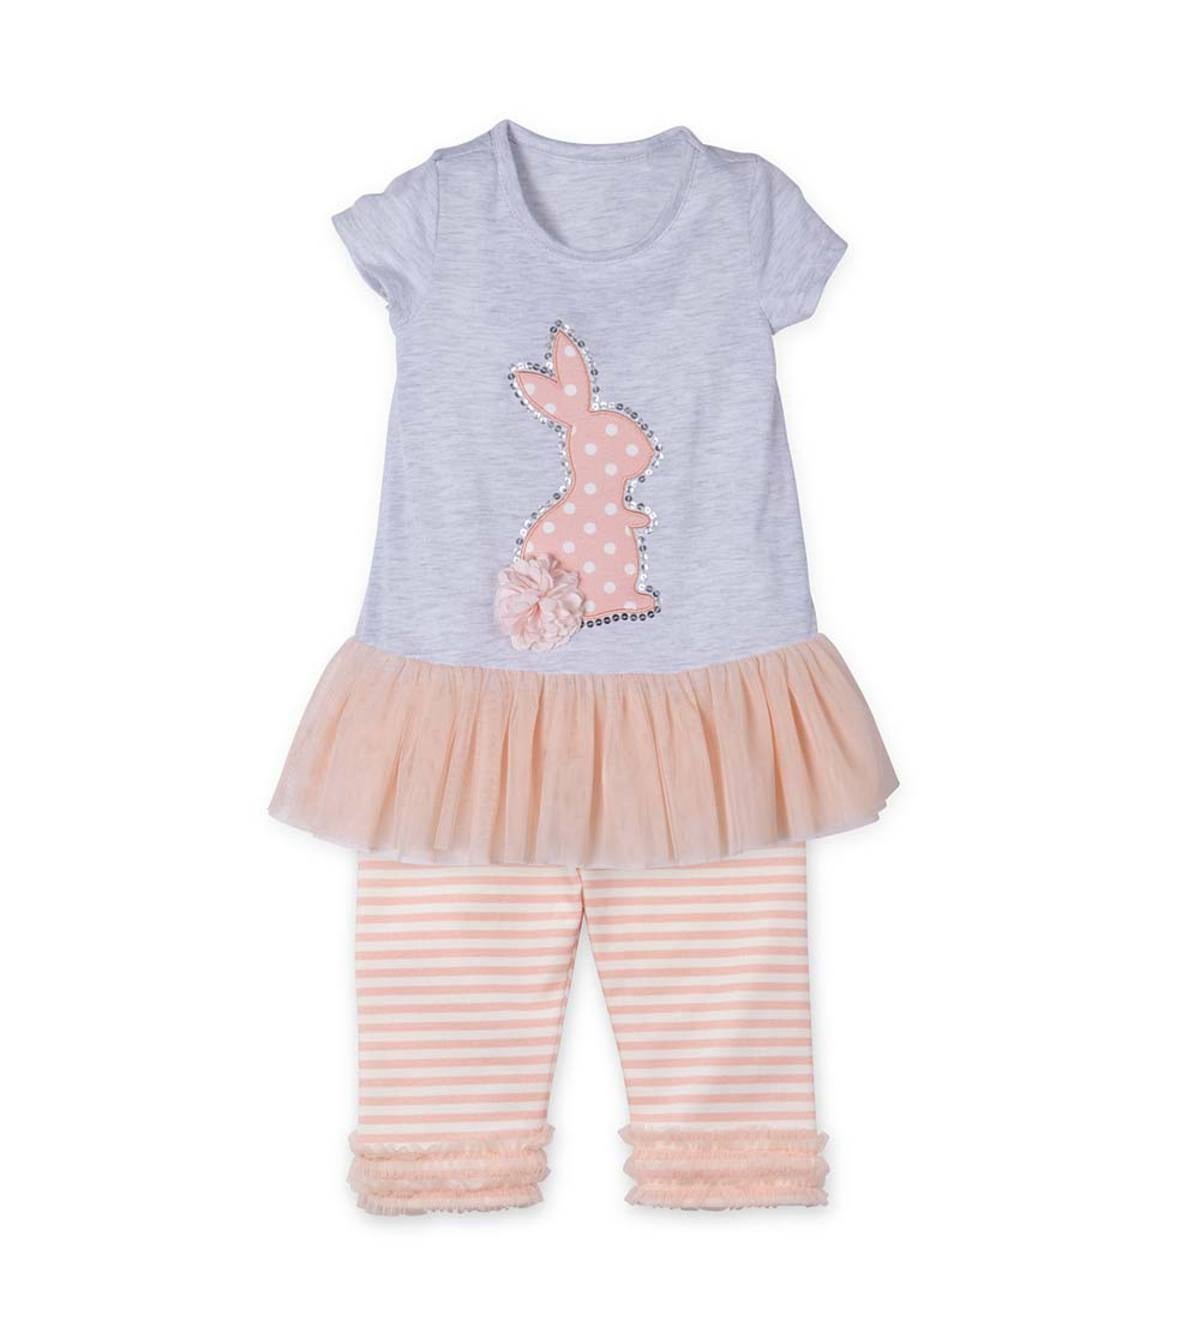 Short Sleeve Bunny Tutu Shirt and Leggings Set - Multi - 12M